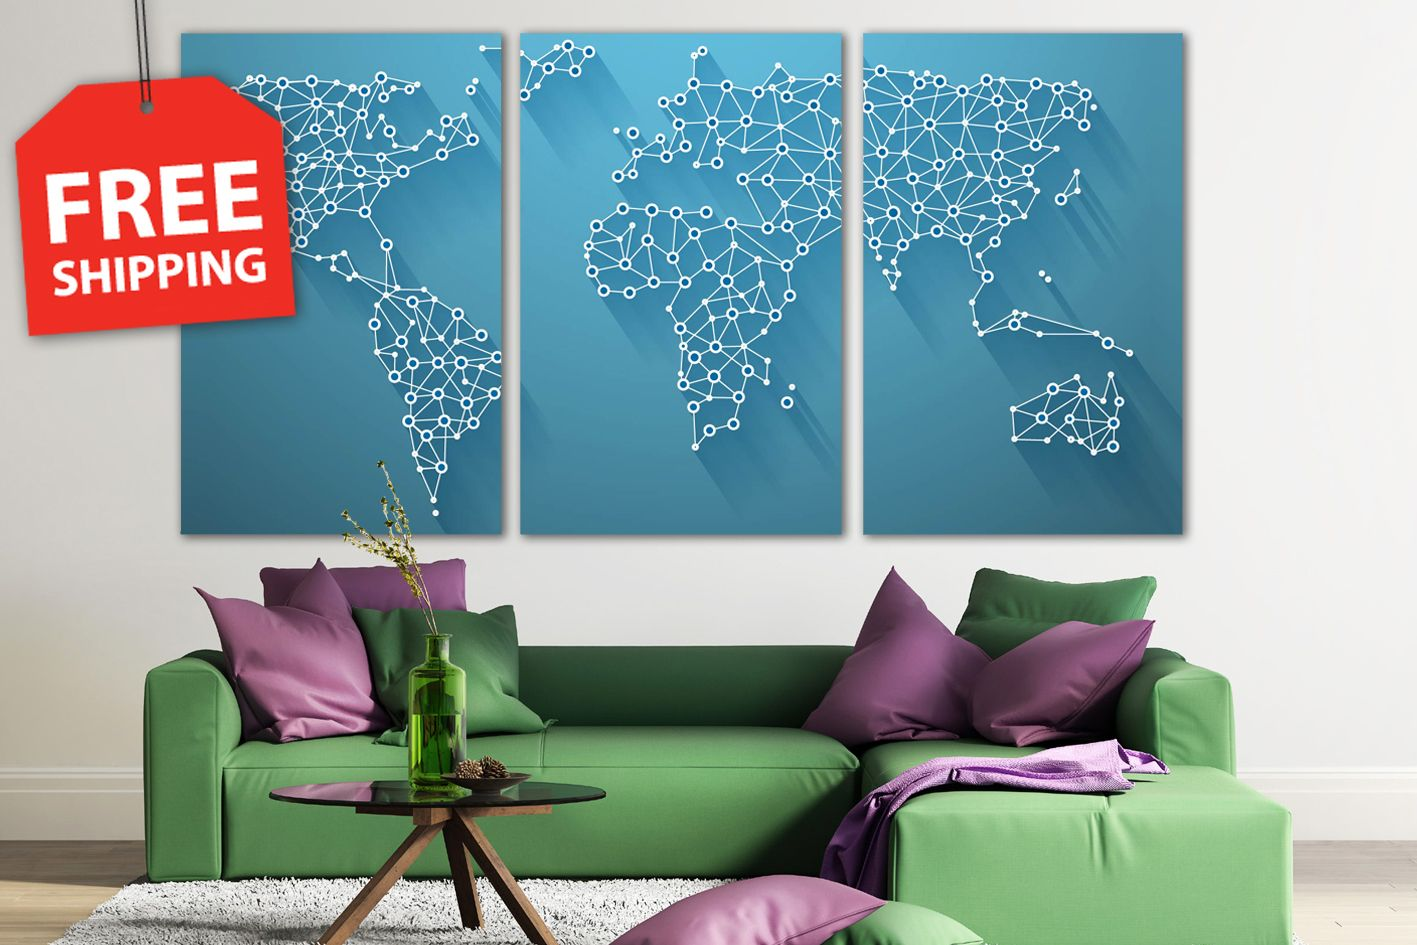 Abstract world map blue 3 d world map for room decor xxl canvas abstract world map blue 3 d world map for room decor xxl canvas gumiabroncs Choice Image